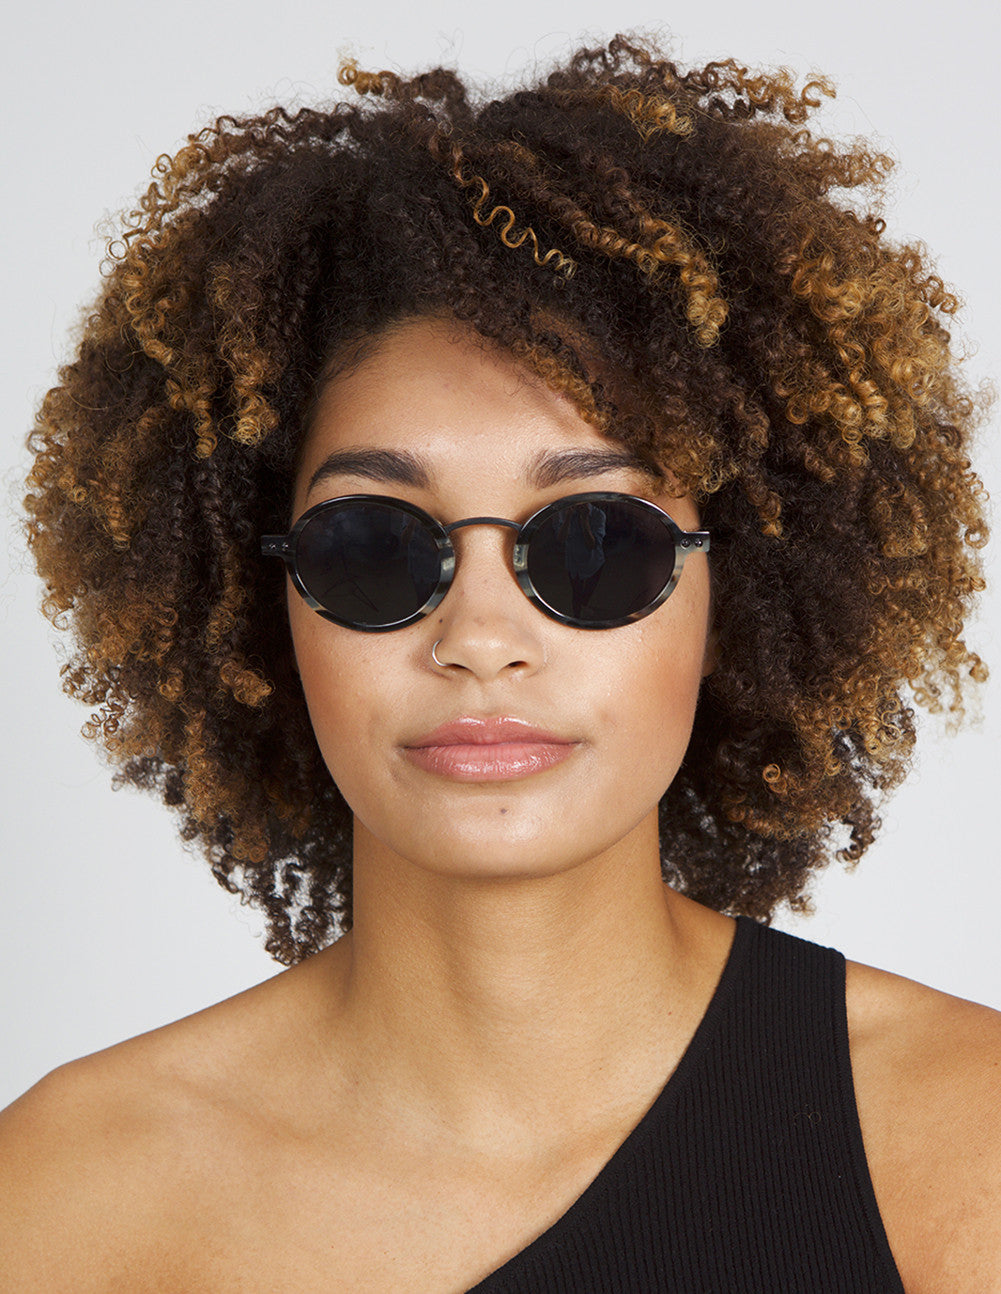 Horn Sunglasses